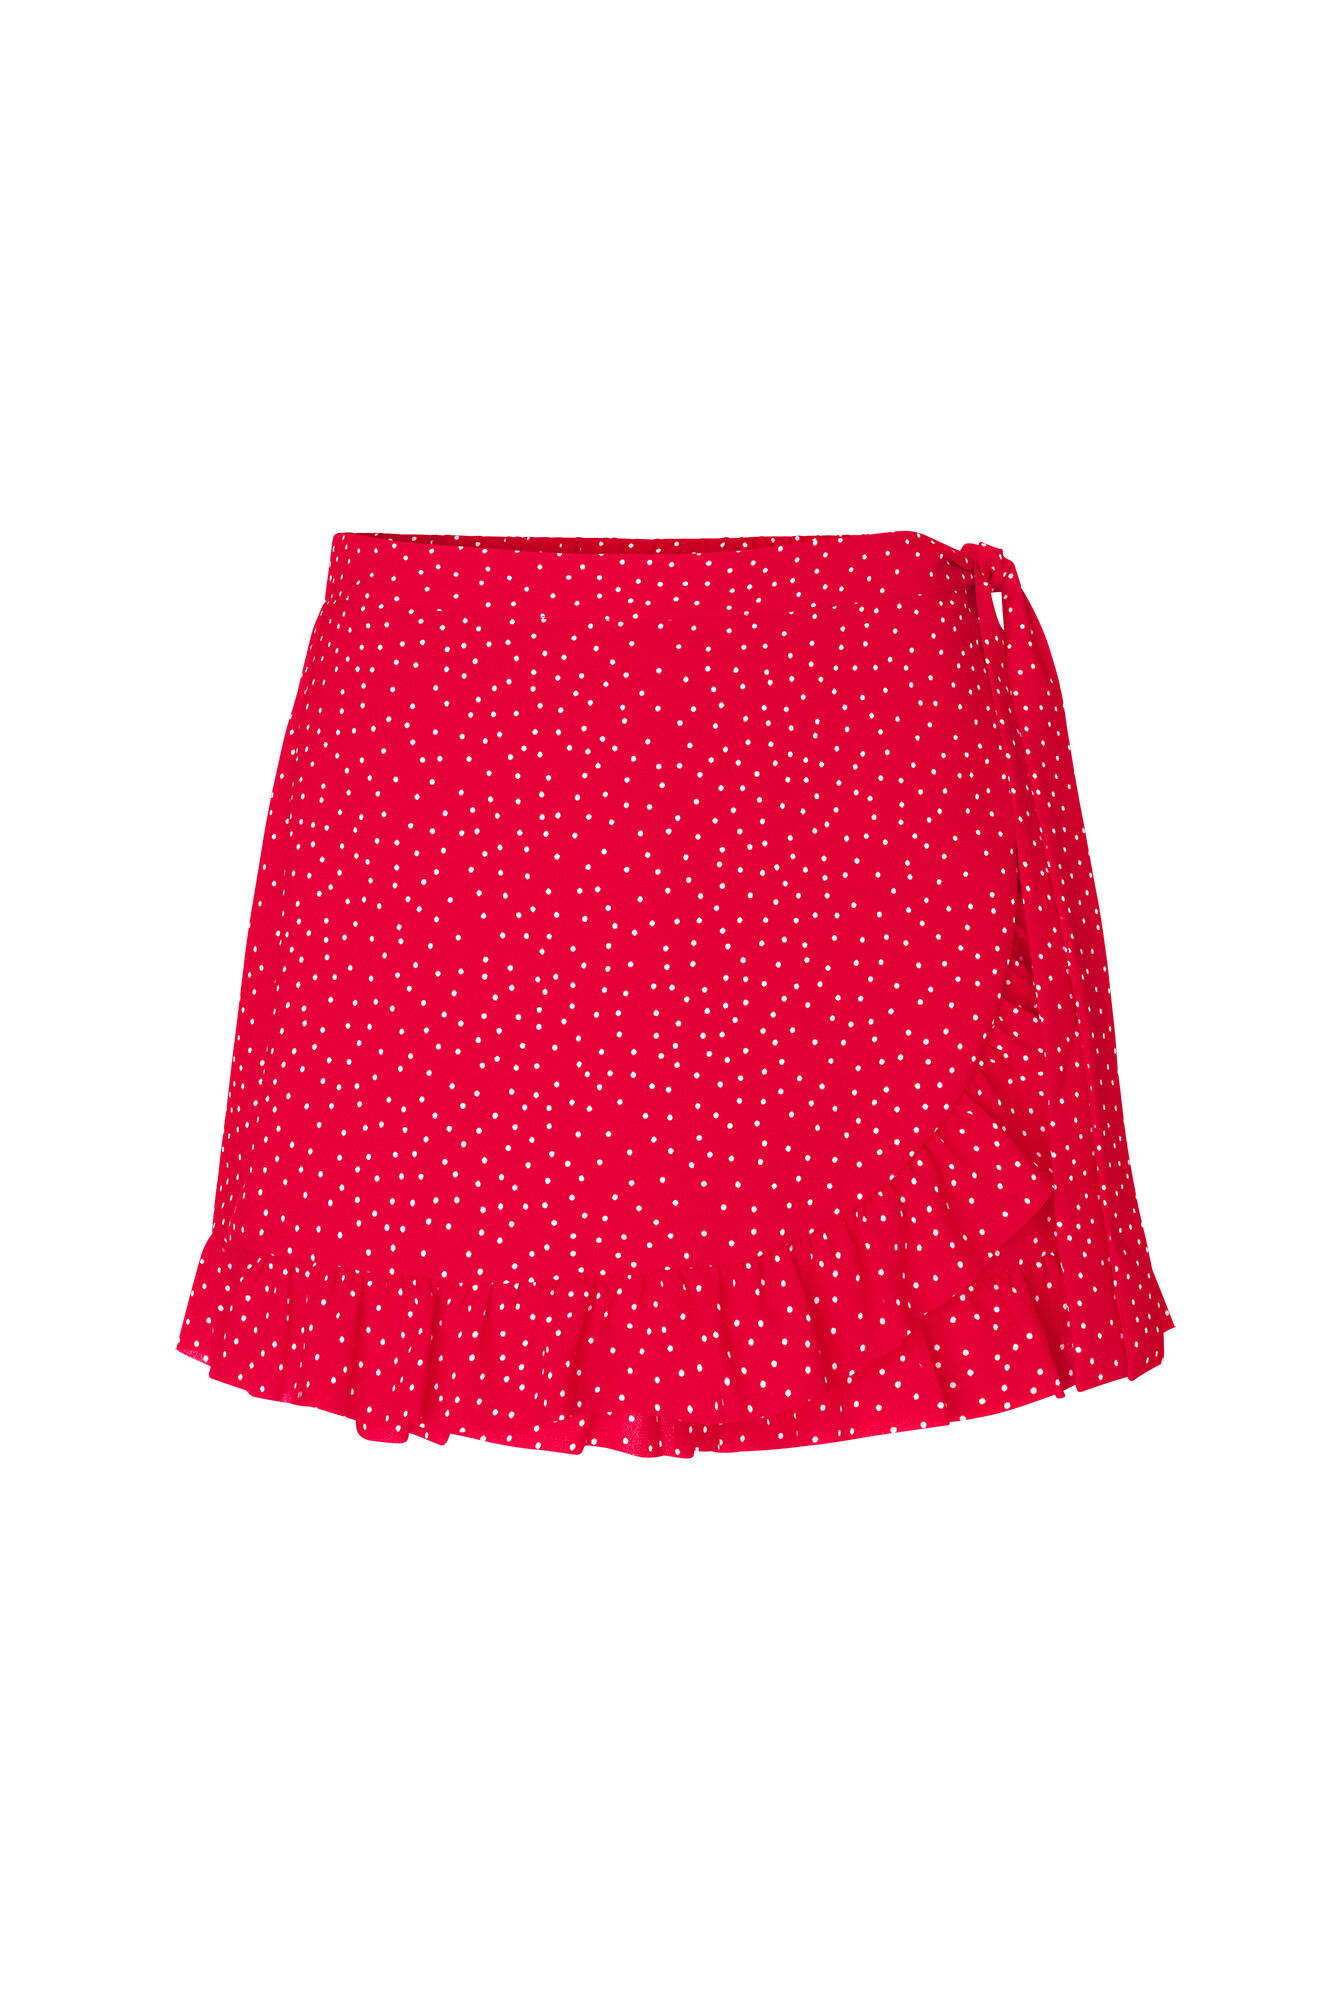 ENCHILI SHORTS AOP 6444